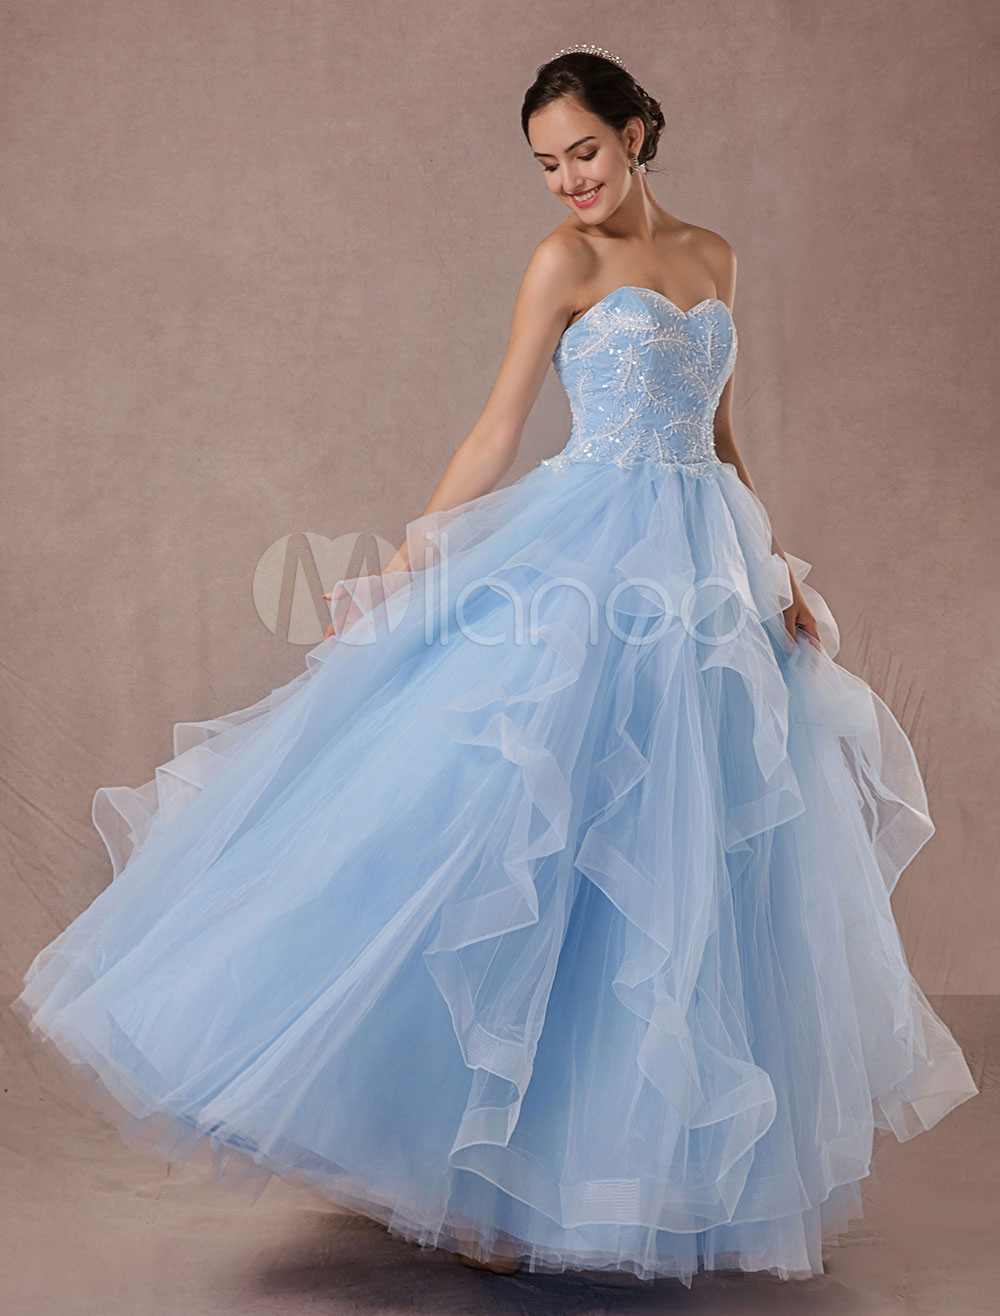 Blue Wedding Dress Lace Flower Applique Off-the-shoulder Tulle Cape ...